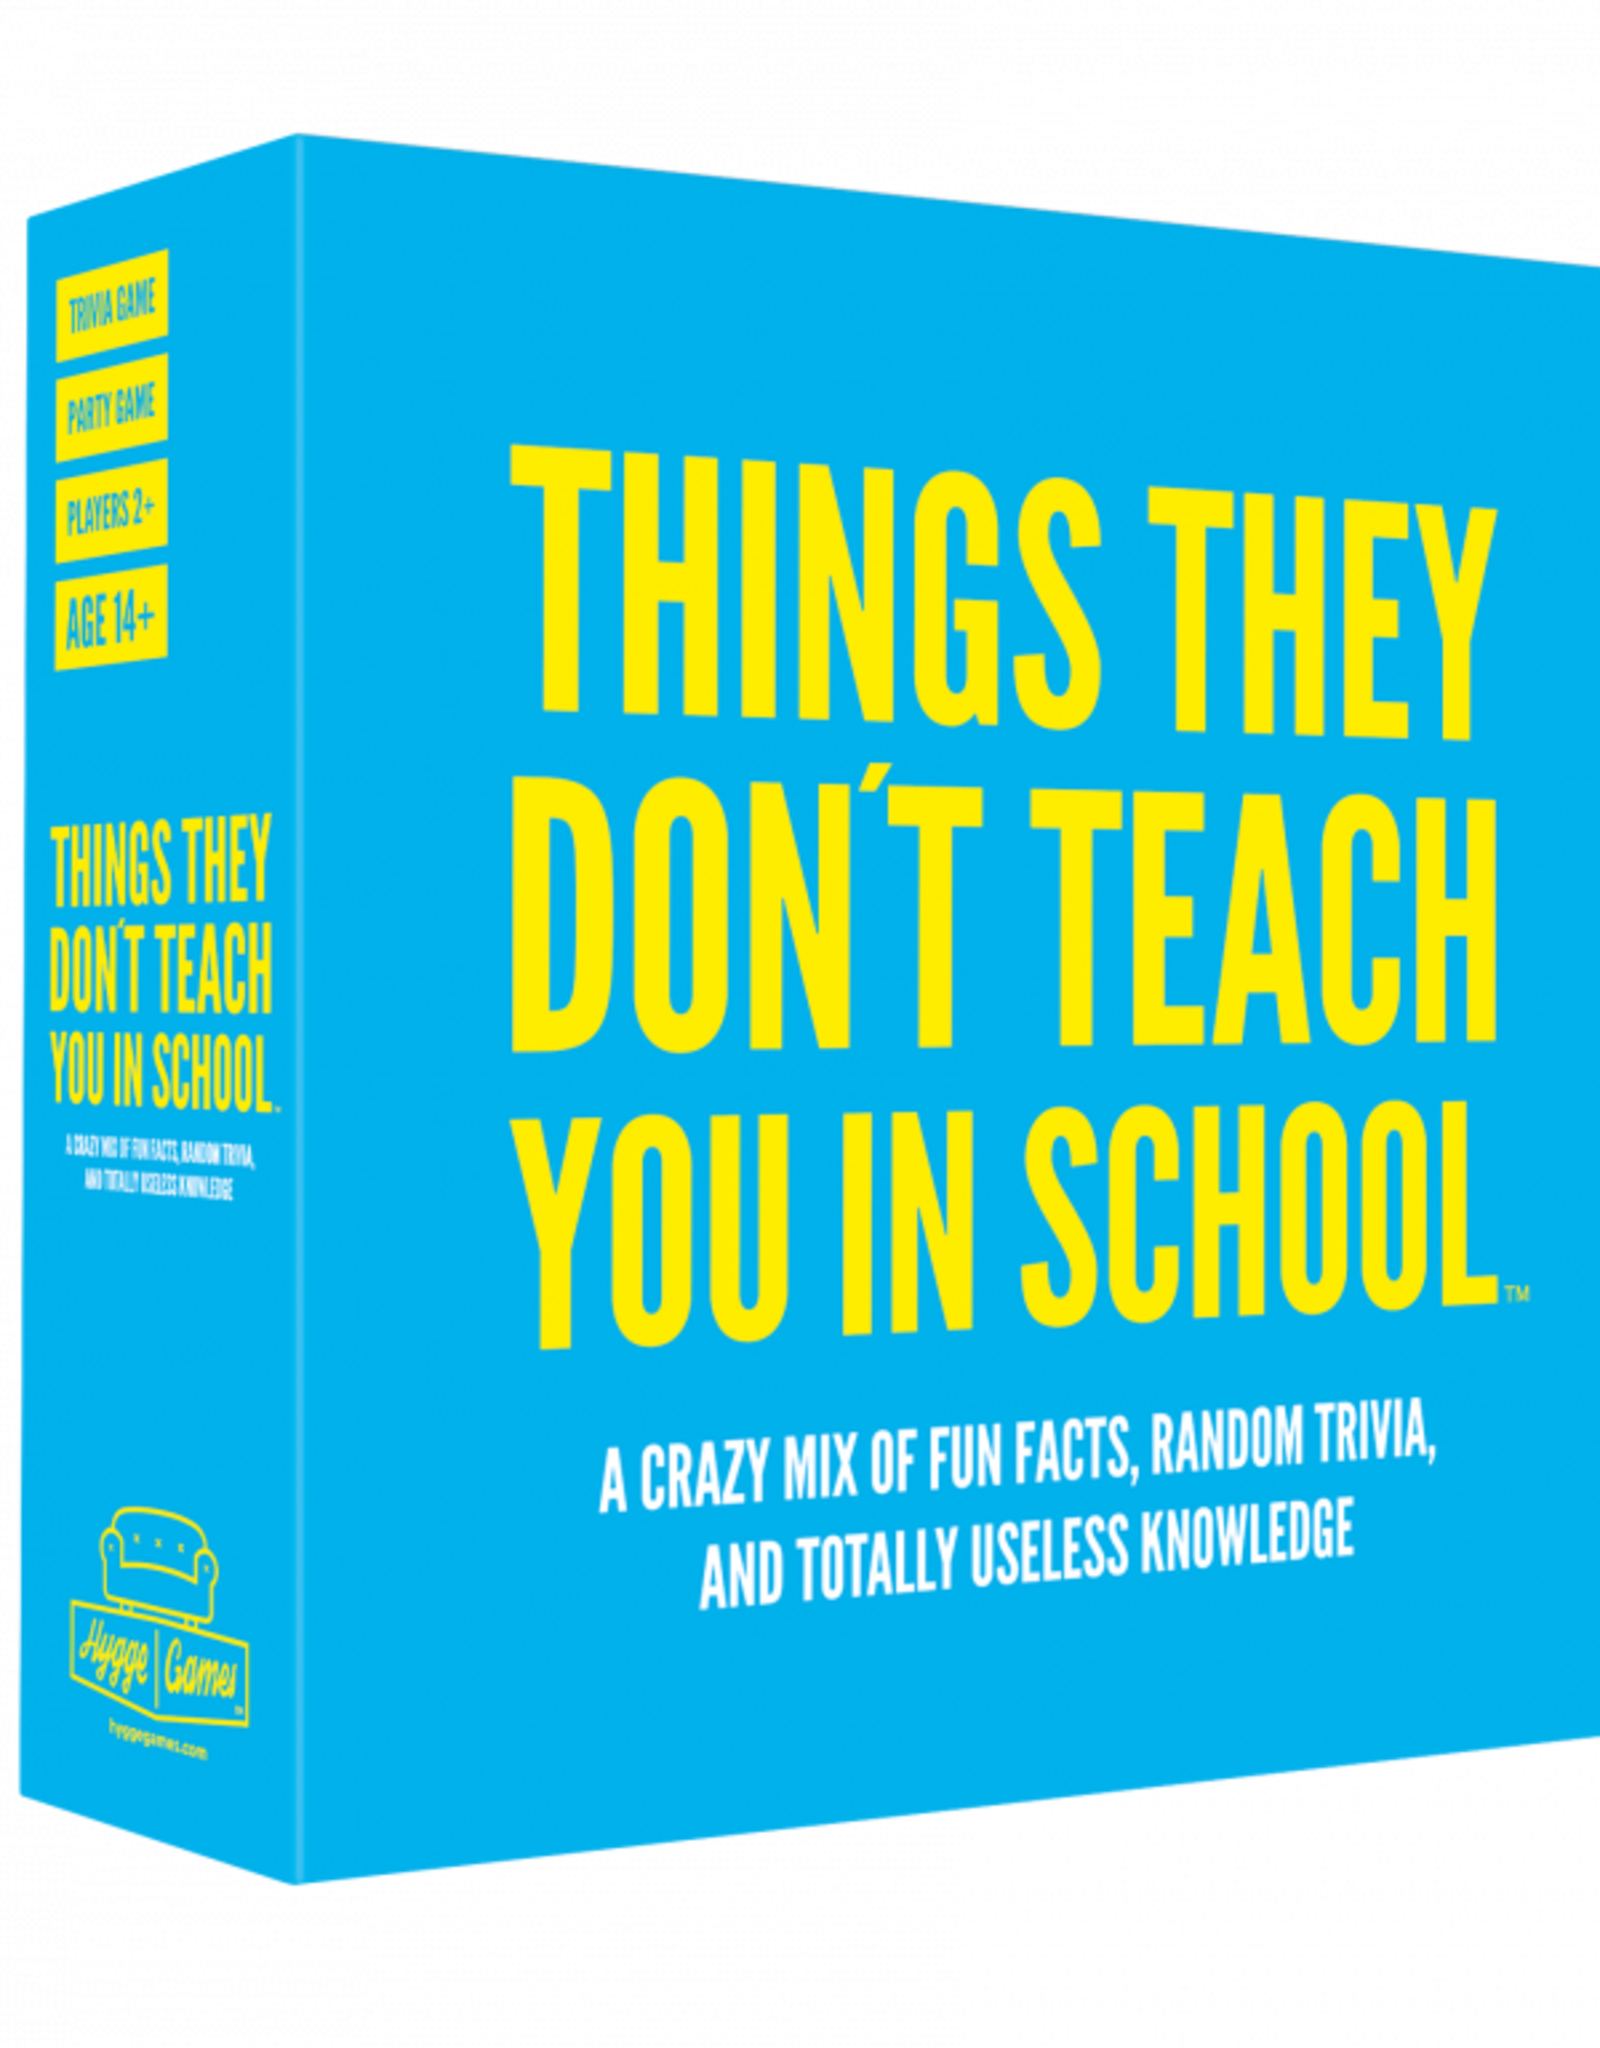 Game: Things they don't teach you